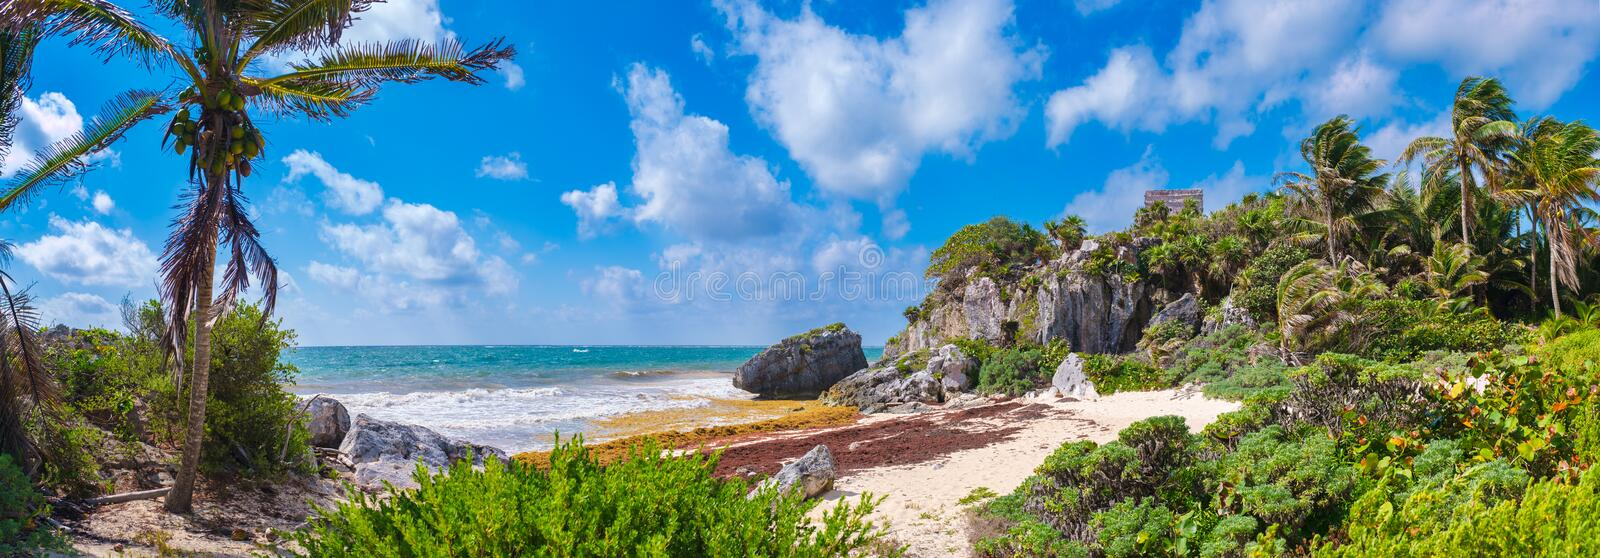 Beautiful beach and mayan ruins on a cliff at Tulum in Mexico stock images